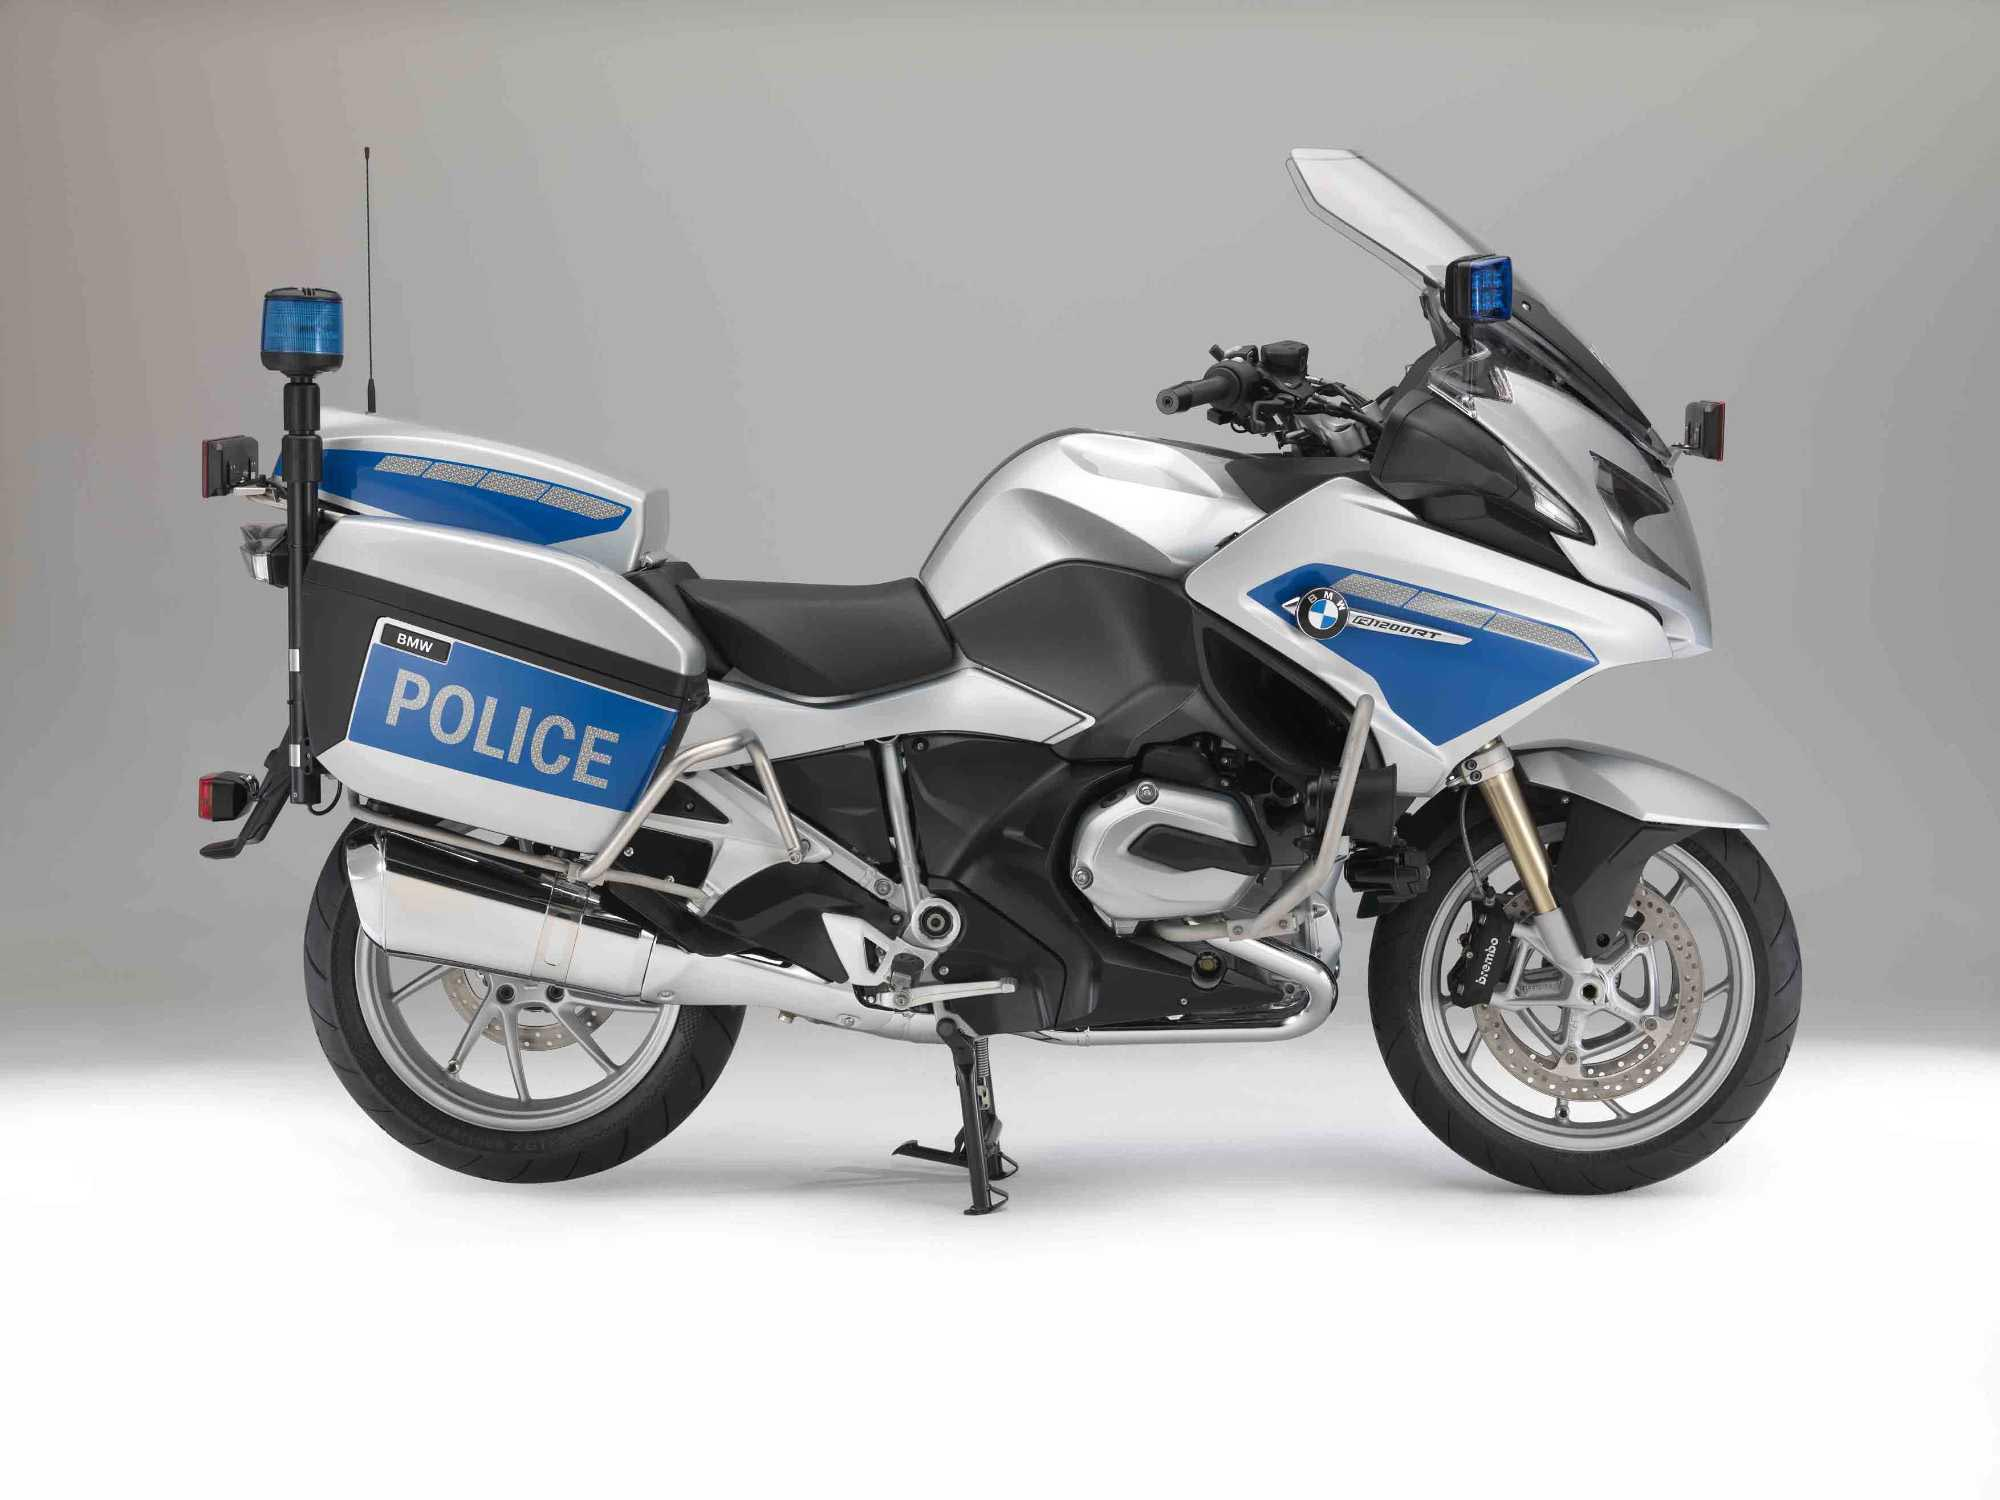 recall bmw r1200rt police bike asphalt rubber. Black Bedroom Furniture Sets. Home Design Ideas